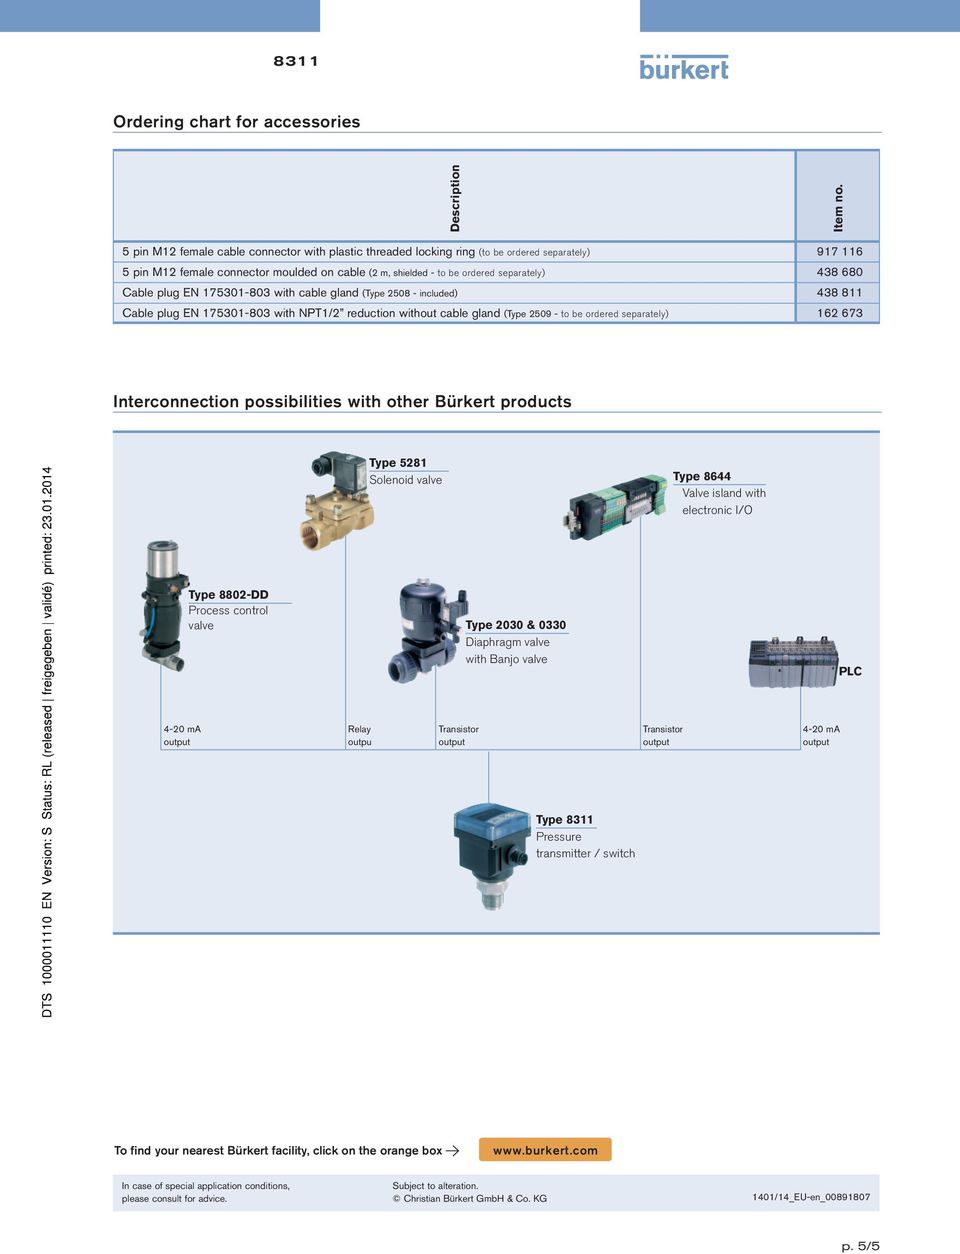 to be ordered separately) 162 673 Inter possibilities with other Bürkert products Type 5281 Solenoid Type 8644 Valve island with electronic I/O Type 8802-DD Type 2030 & 0330 Diaphragm with Banjo PLC